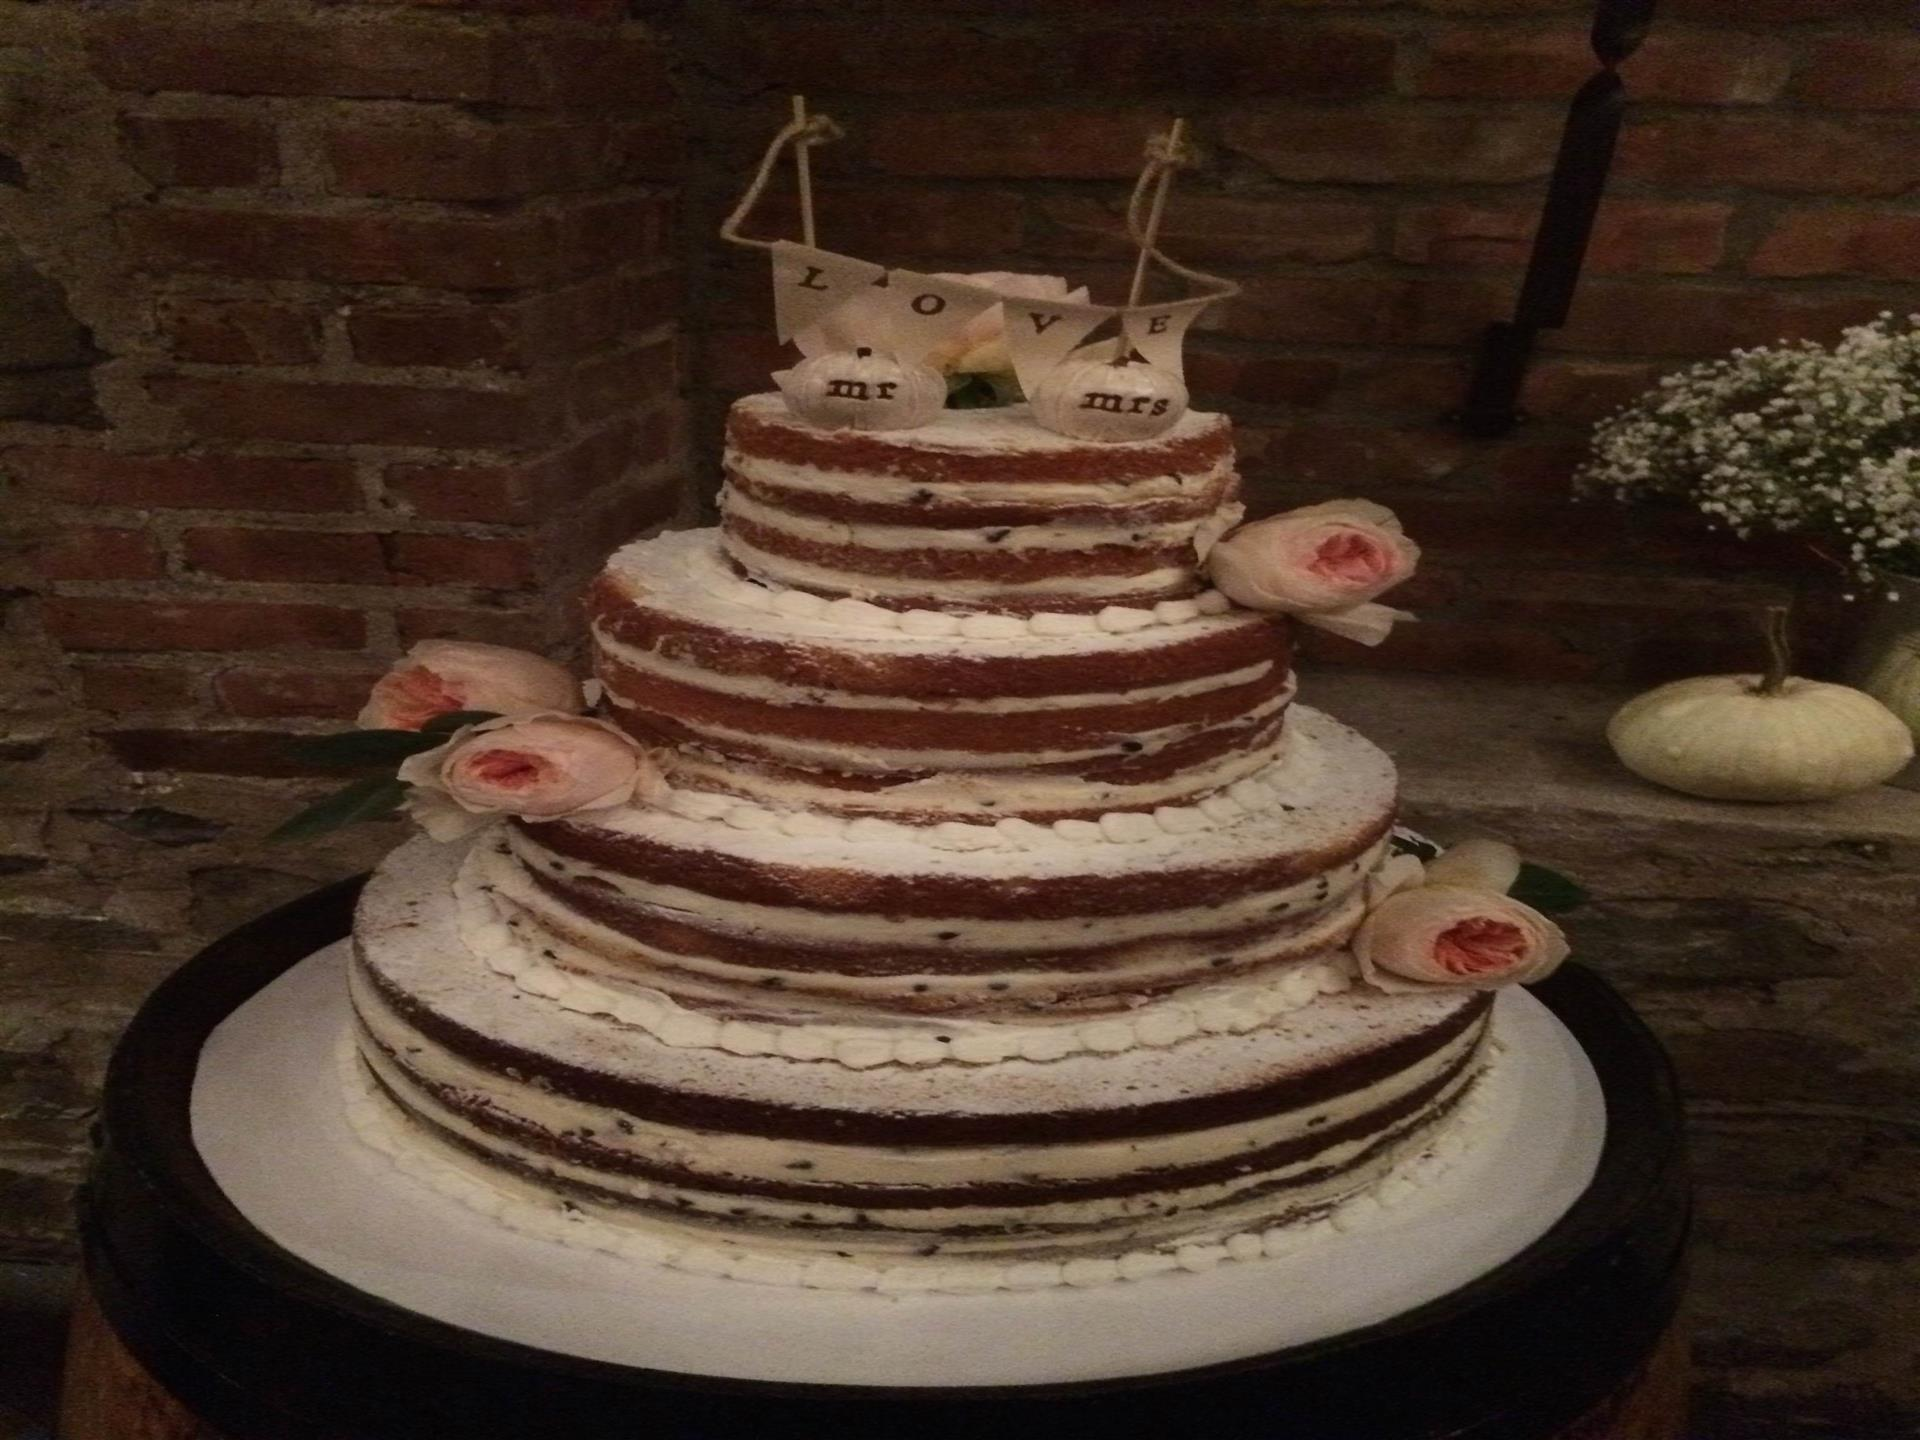 naked cake topped with peonys